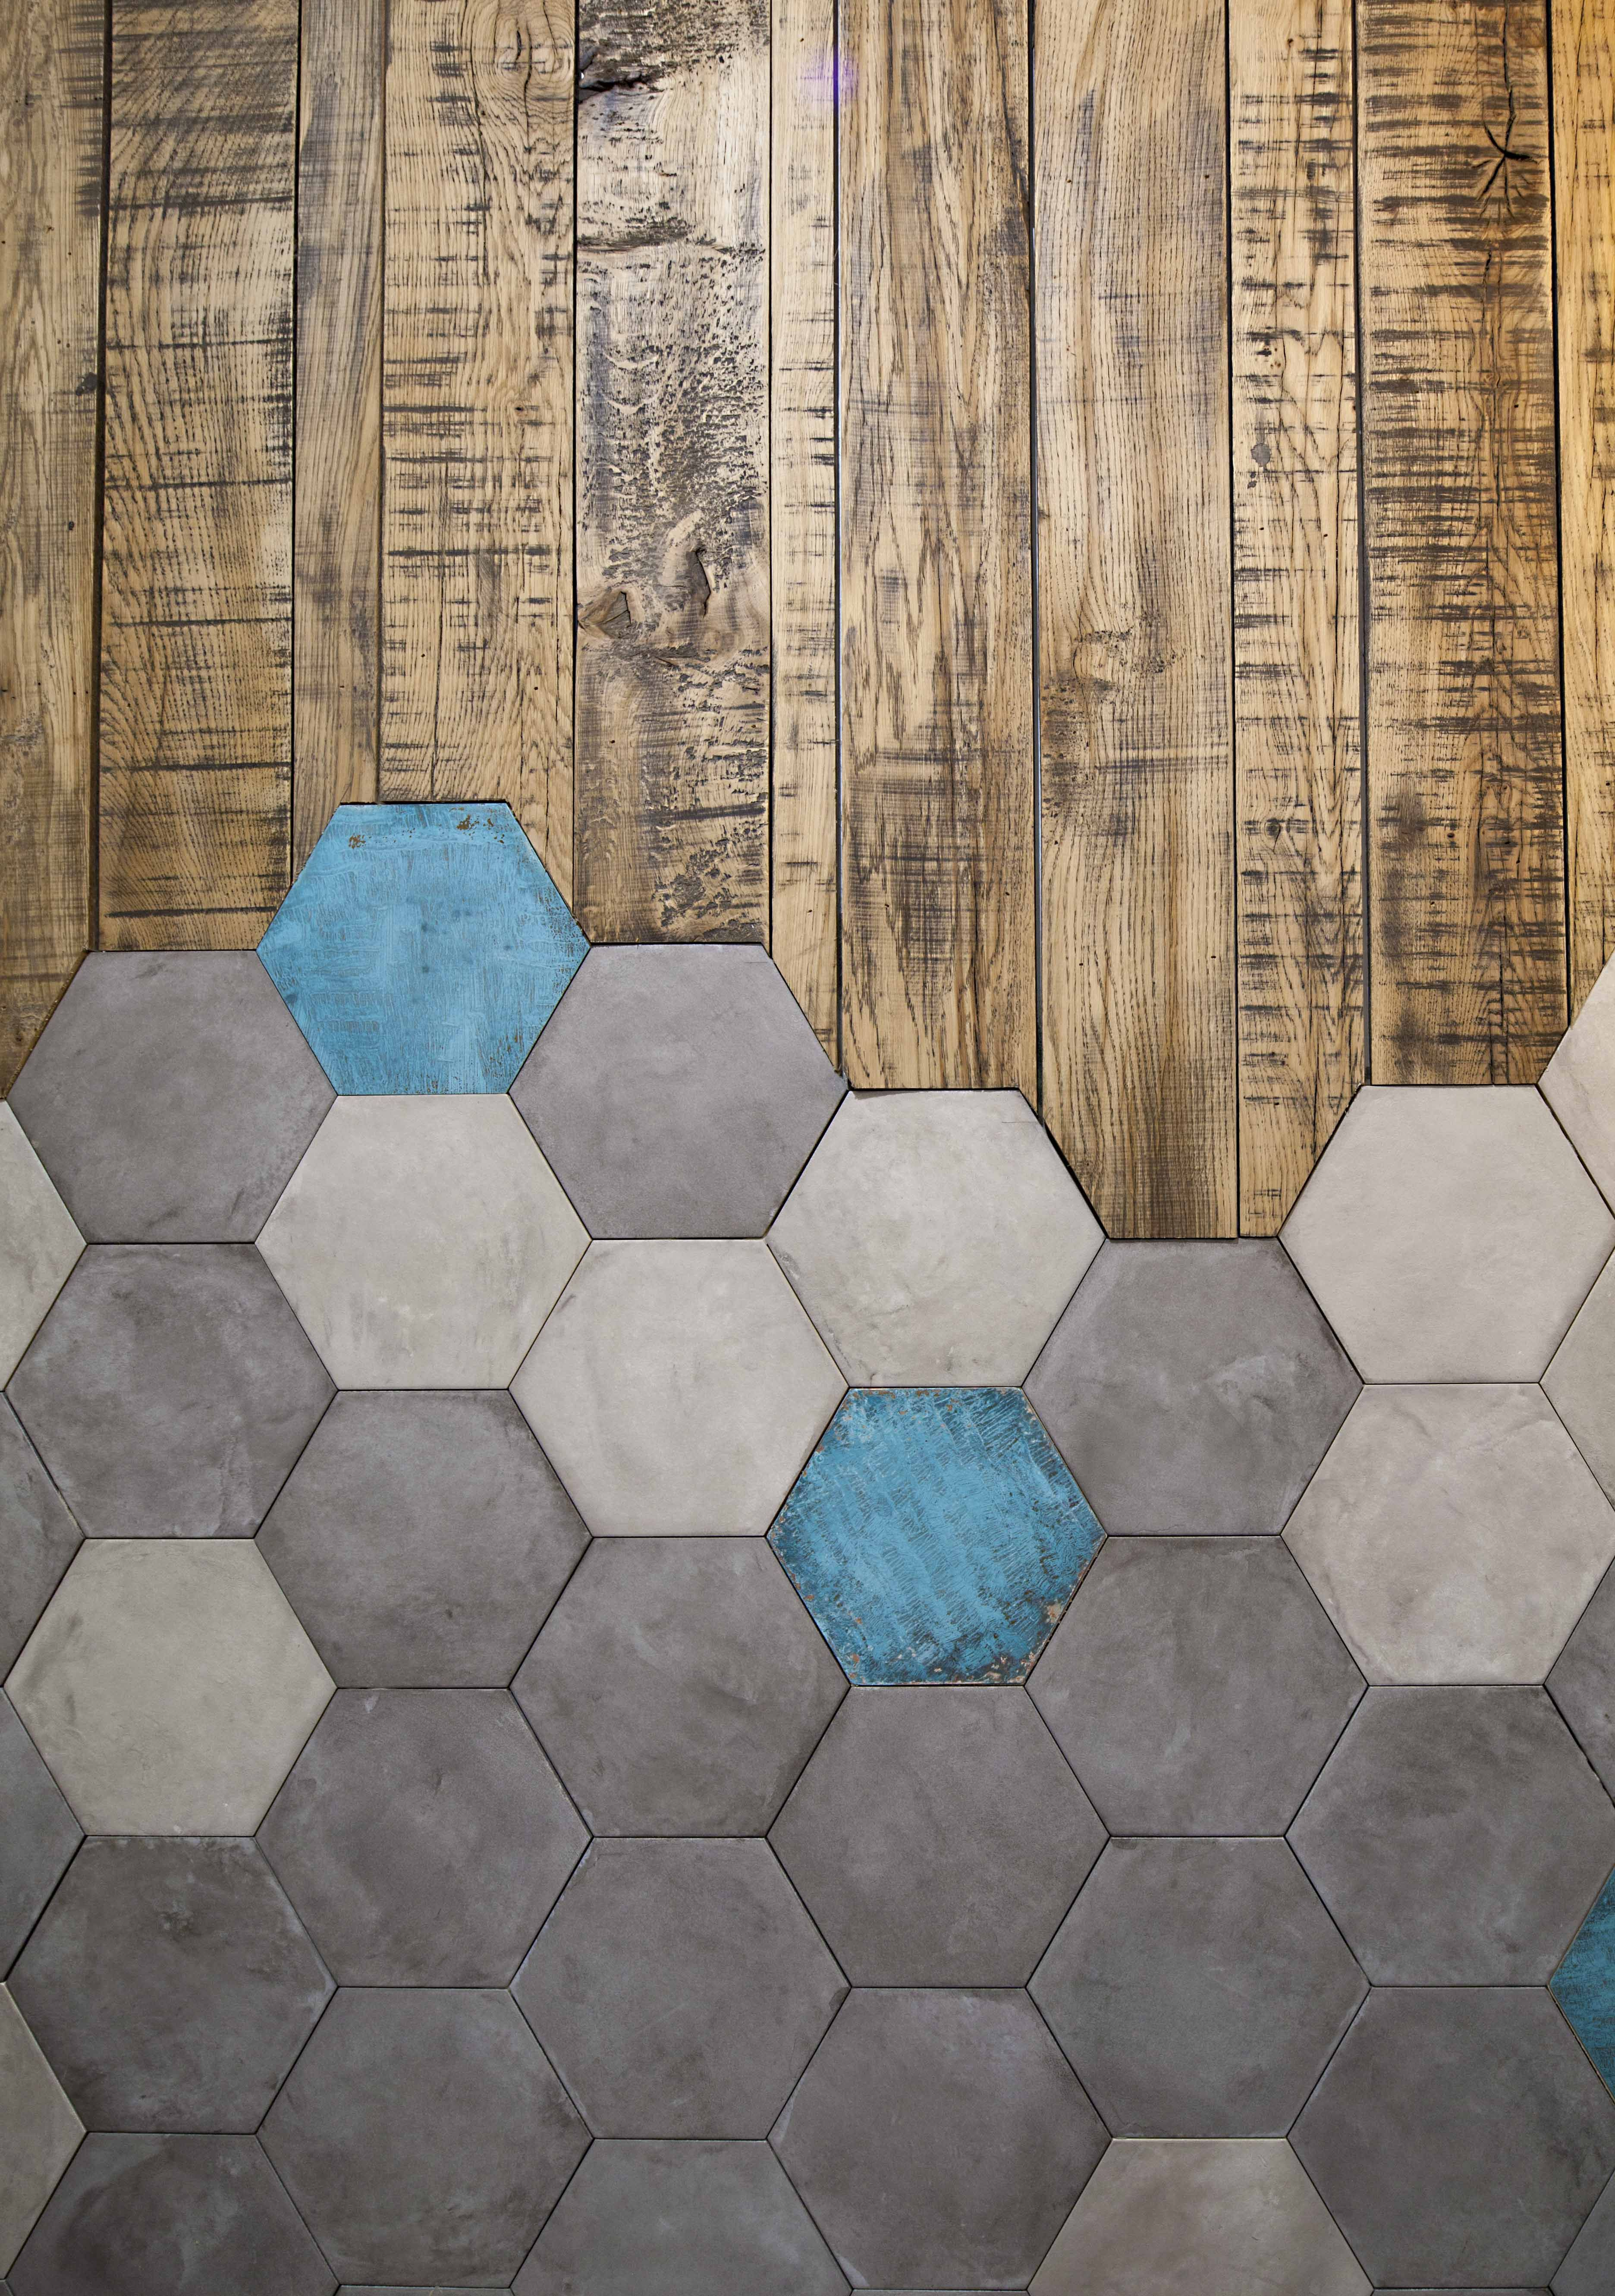 Cool Wooden Flooring Designs For 2017: Hexagon Tiles Meet Wood Tiles In This Very Cool Flooring